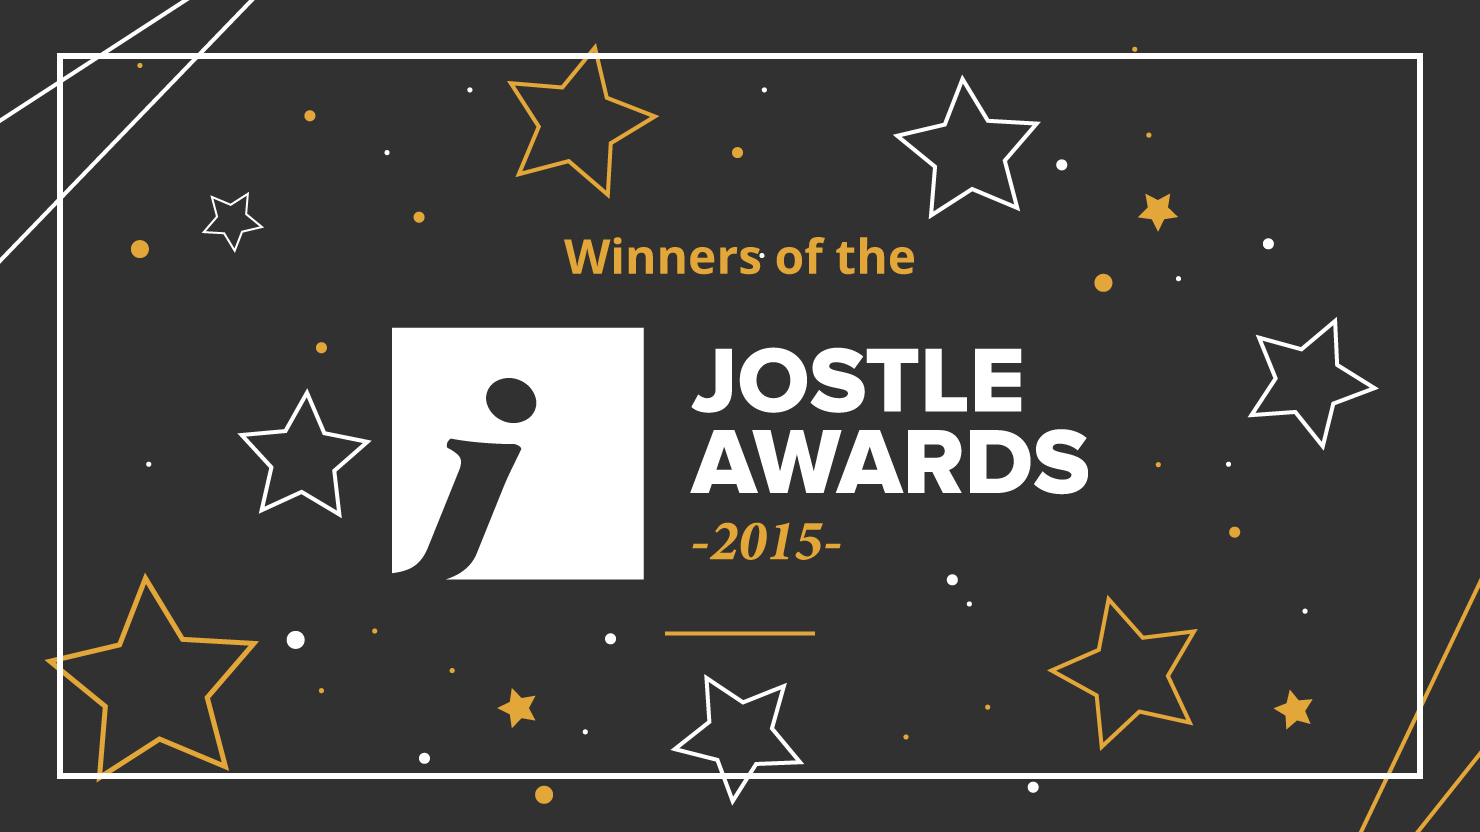 Jostle Awards 2015 Winners revealed!